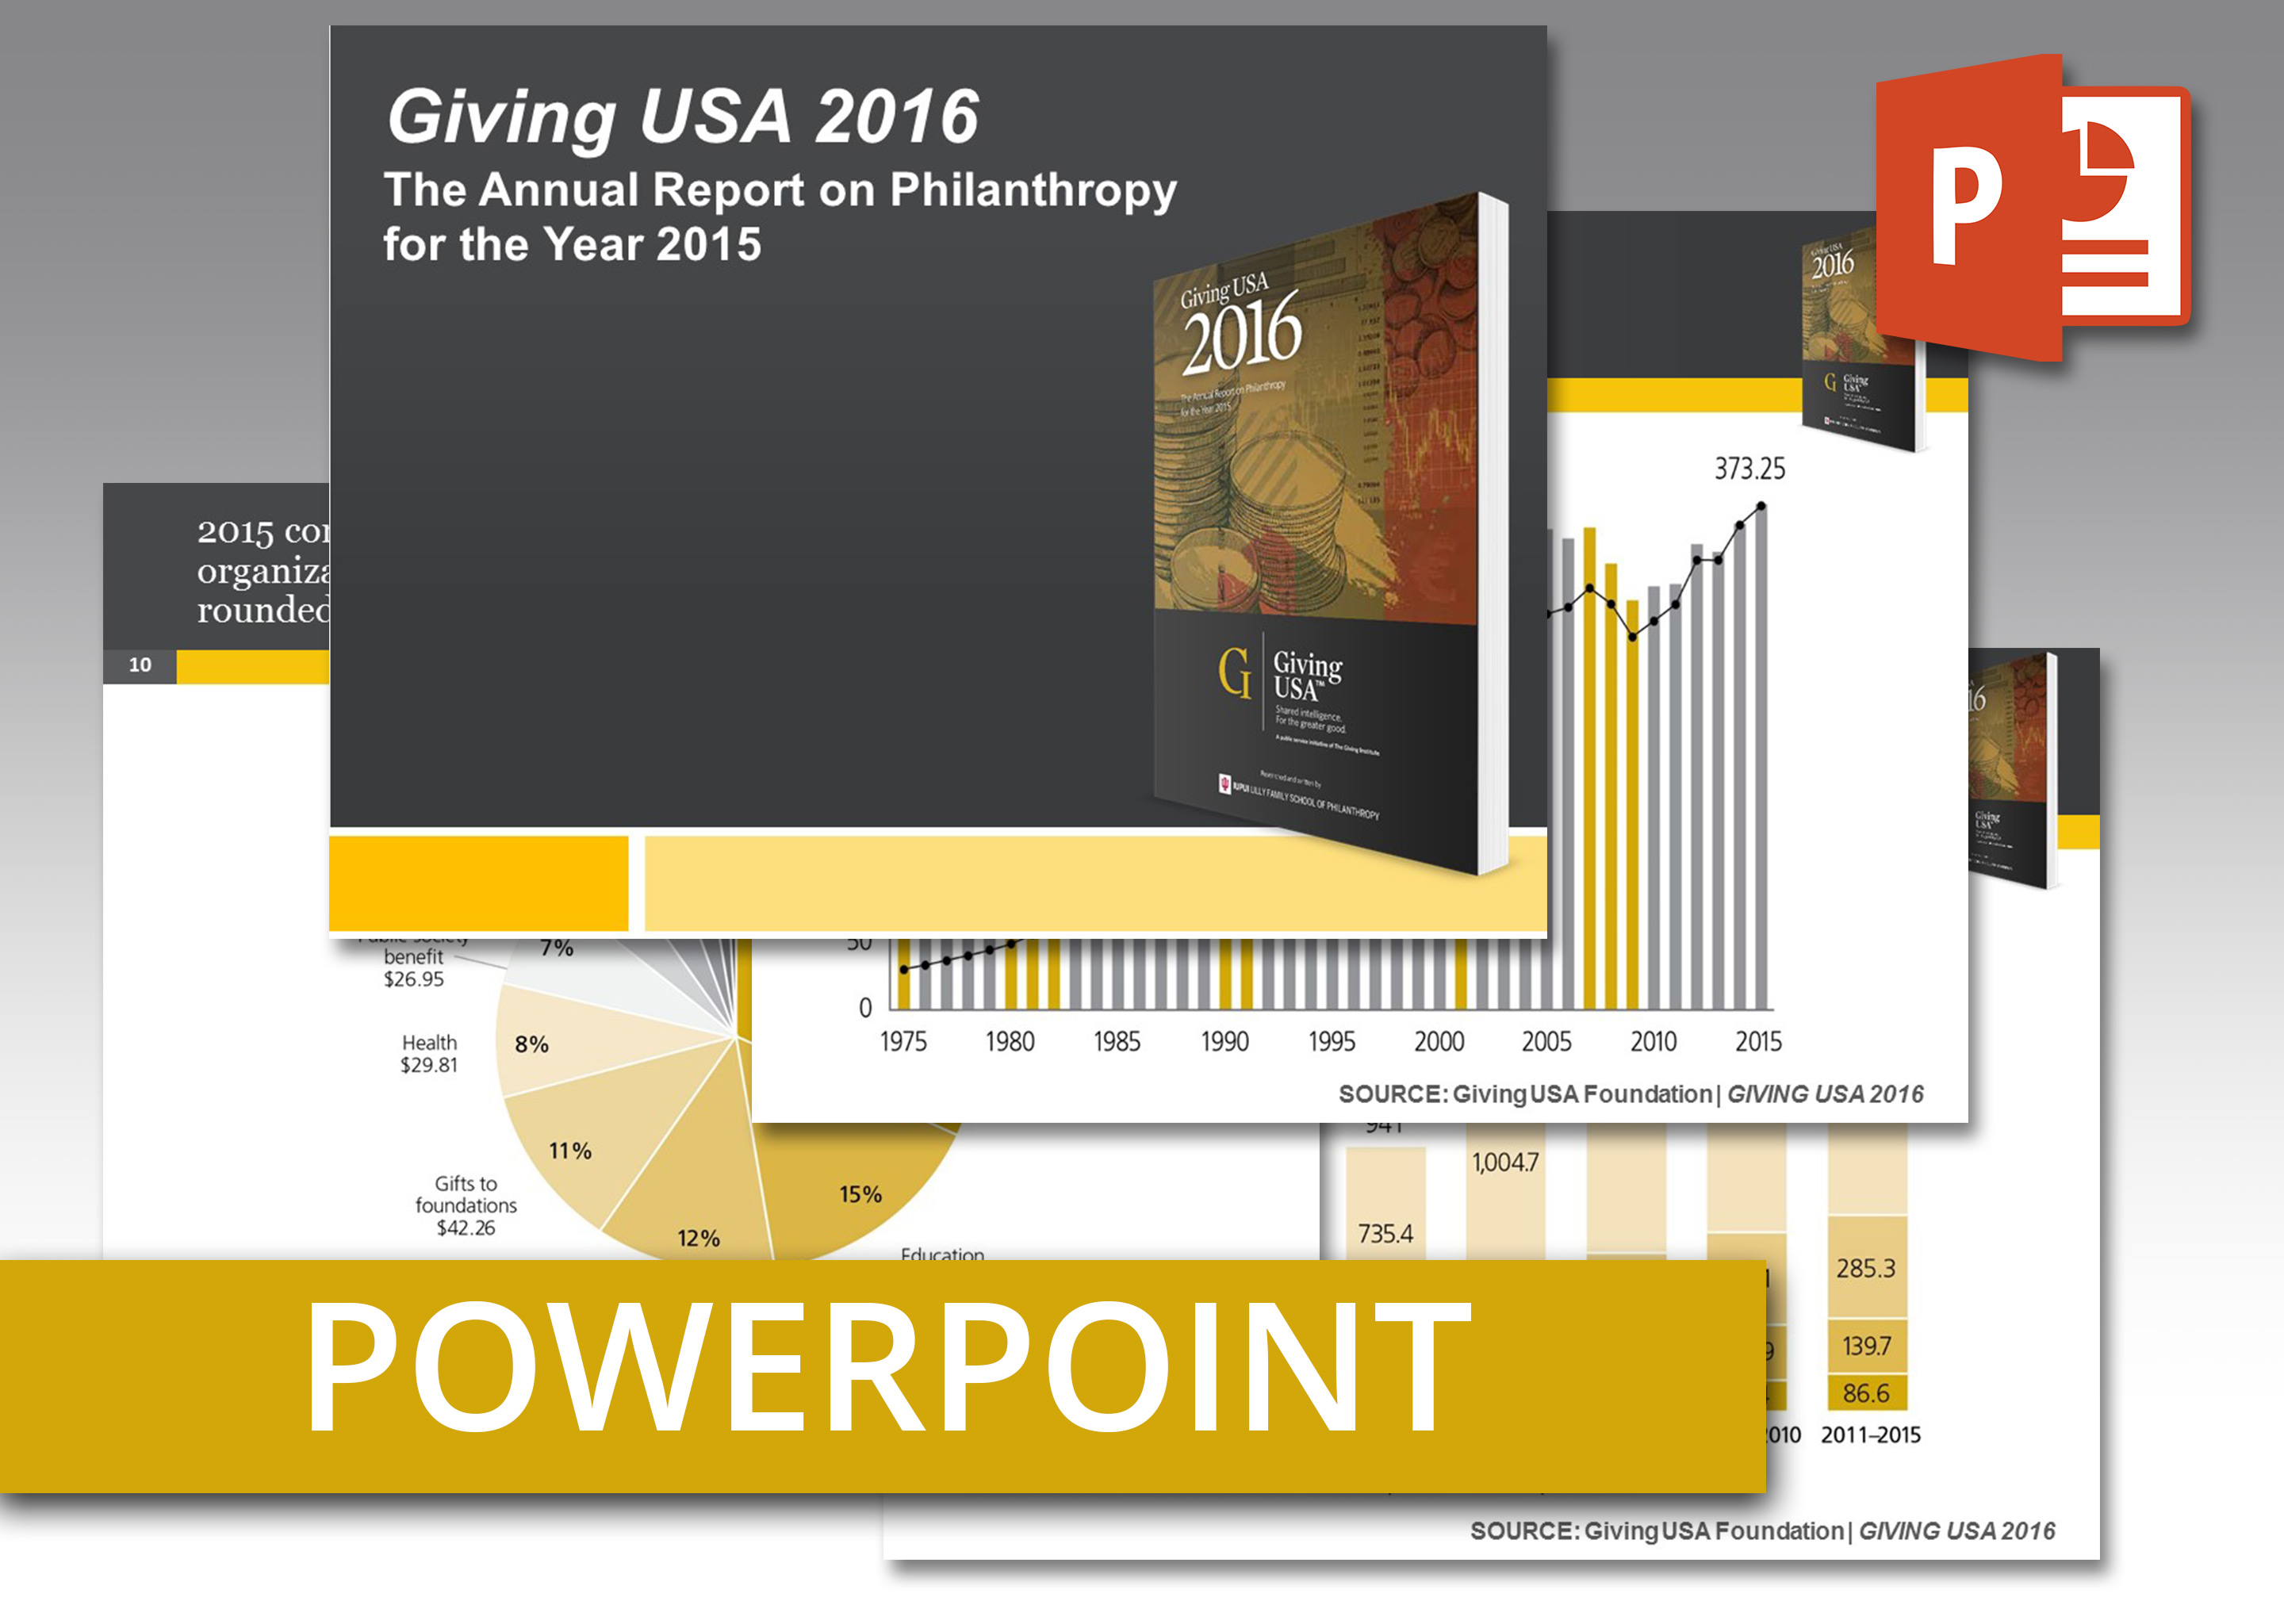 Usdgus  Prepossessing Giving Usa  Powerpoint An Easytouse Presentation Of Report  With Heavenly Giving Usa  Powerpoint An Easytouse Presentation Of Report Findings Including Talking Points With Beauteous Powerpoint Com Also Download Powerpoint Templates In Addition Powerpoint Meltdown And Powerpoint Fonts As Well As Microsoft Powerpoint  Free Download Additionally How To Make A Poster On Powerpoint From Givingusaorg With Usdgus  Heavenly Giving Usa  Powerpoint An Easytouse Presentation Of Report  With Beauteous Giving Usa  Powerpoint An Easytouse Presentation Of Report Findings Including Talking Points And Prepossessing Powerpoint Com Also Download Powerpoint Templates In Addition Powerpoint Meltdown From Givingusaorg